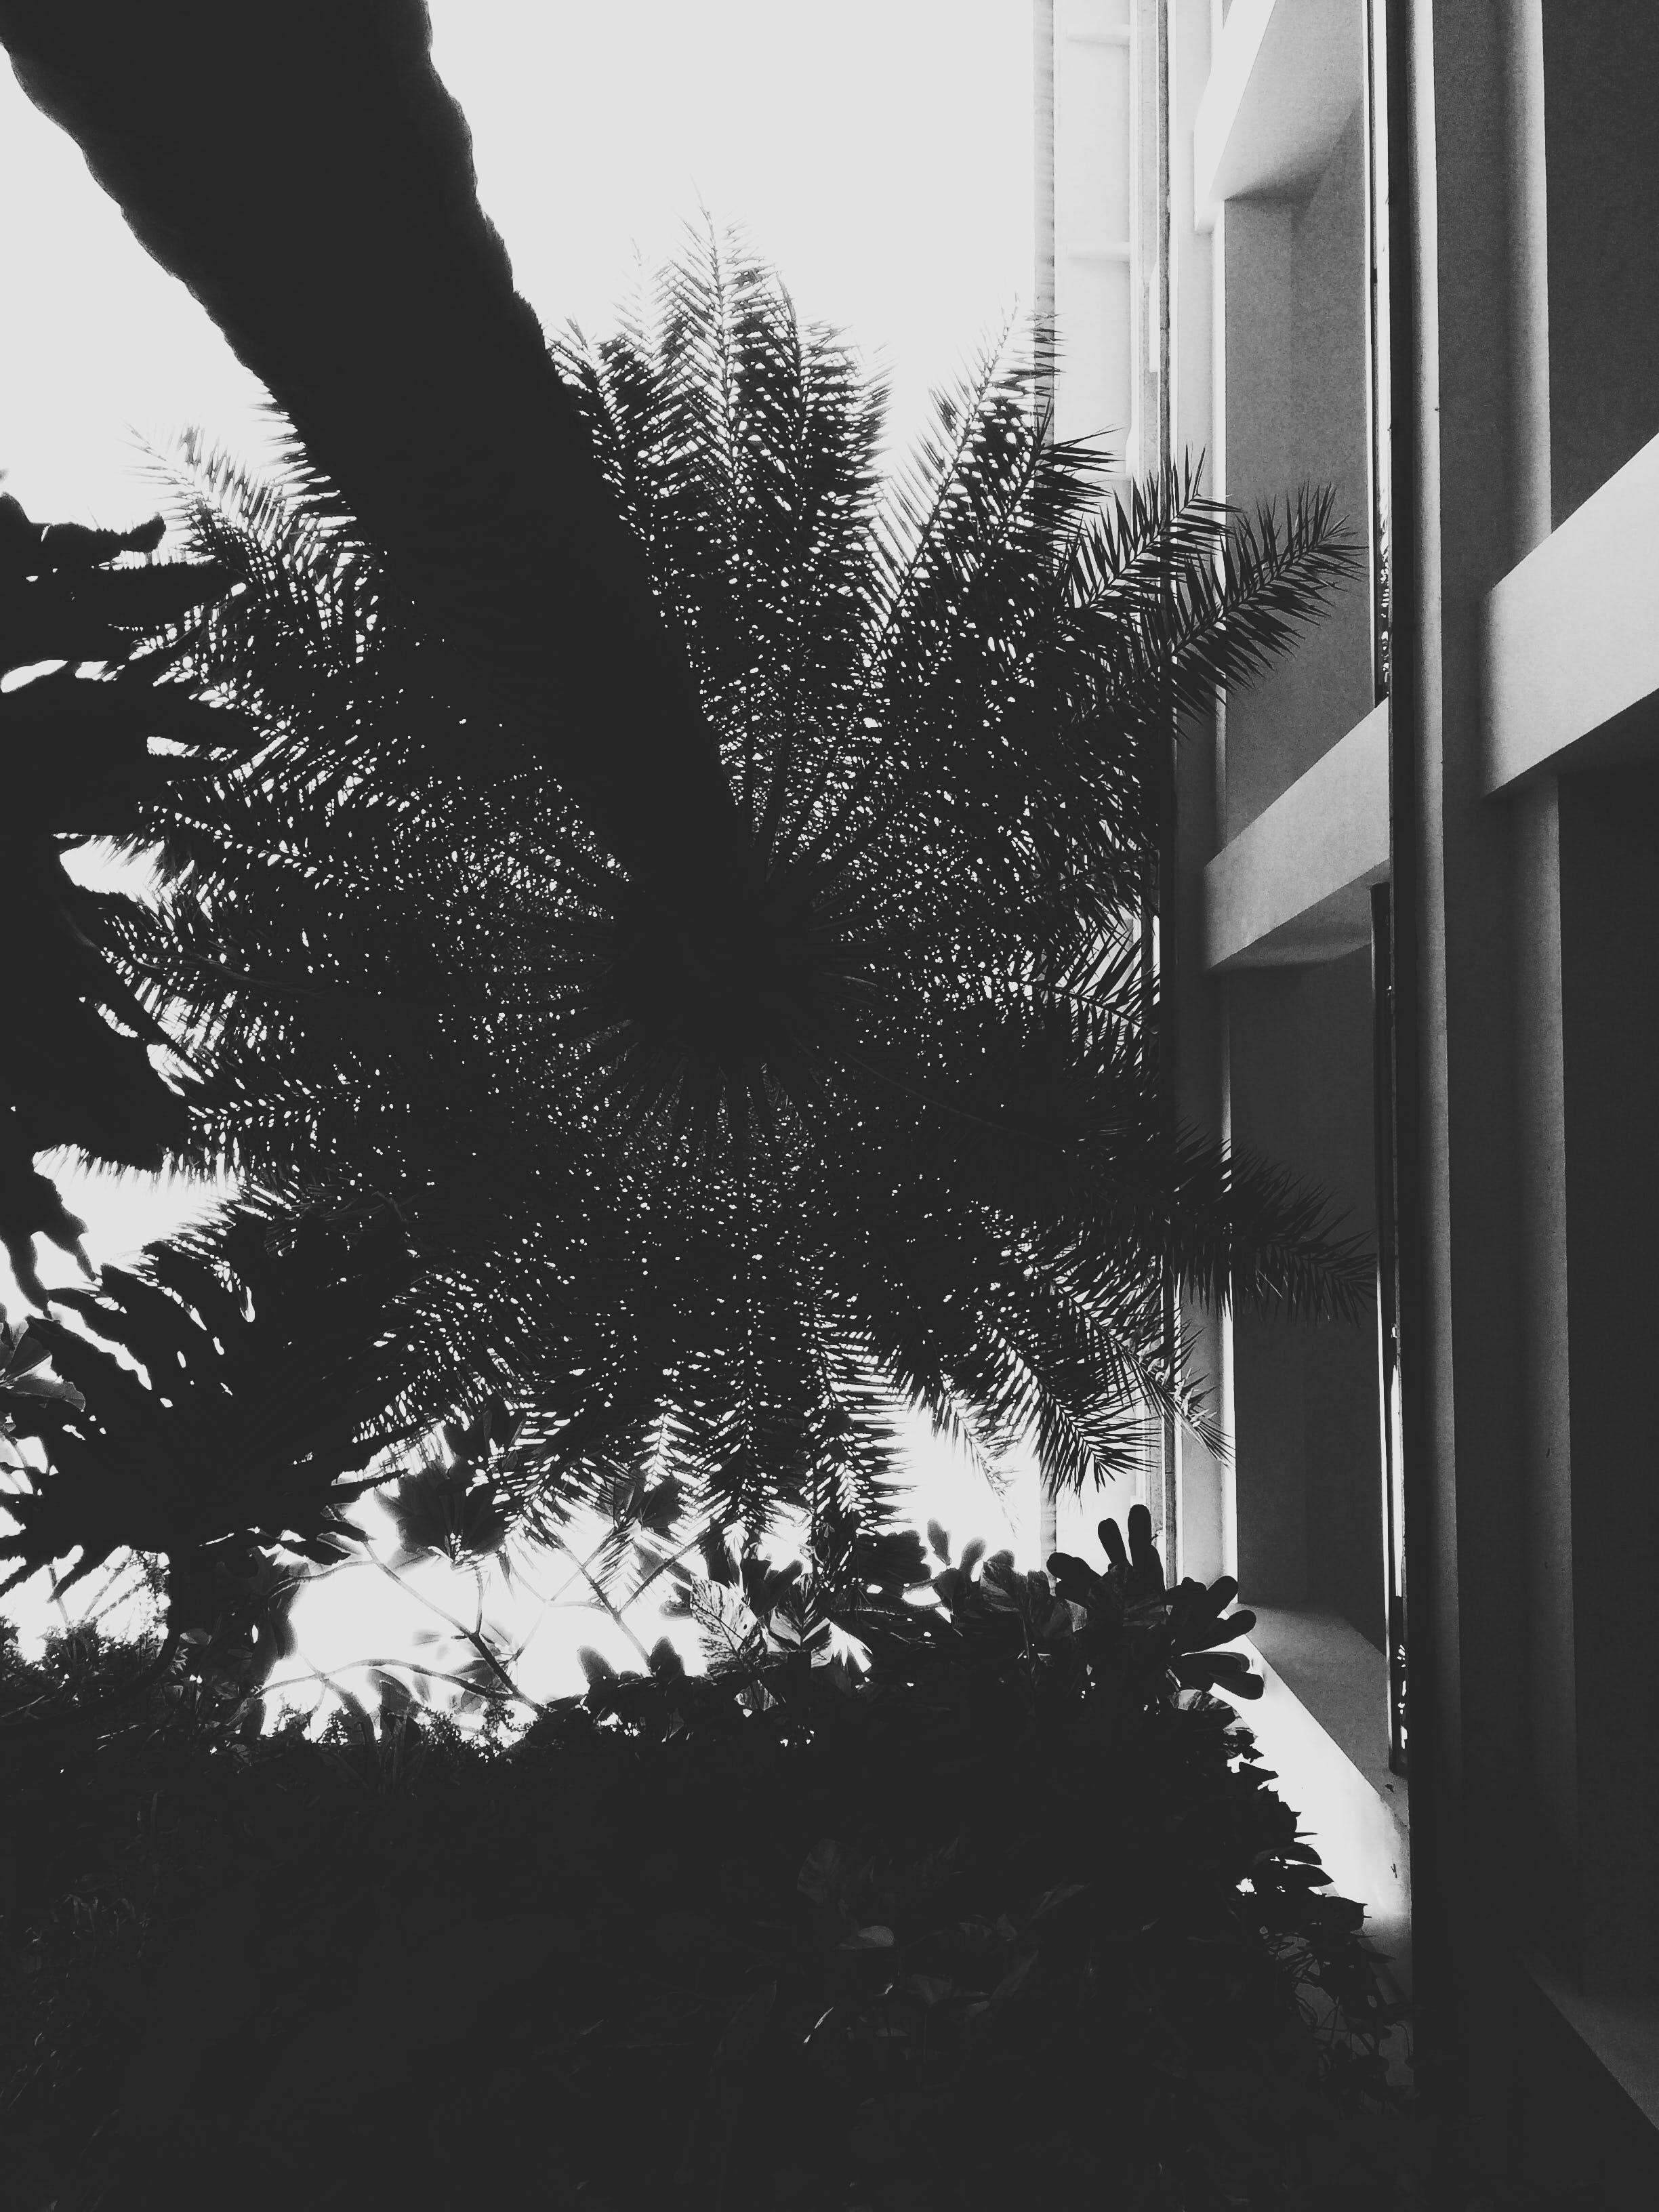 Free stock photo of black-and-white, building, trees, leaves